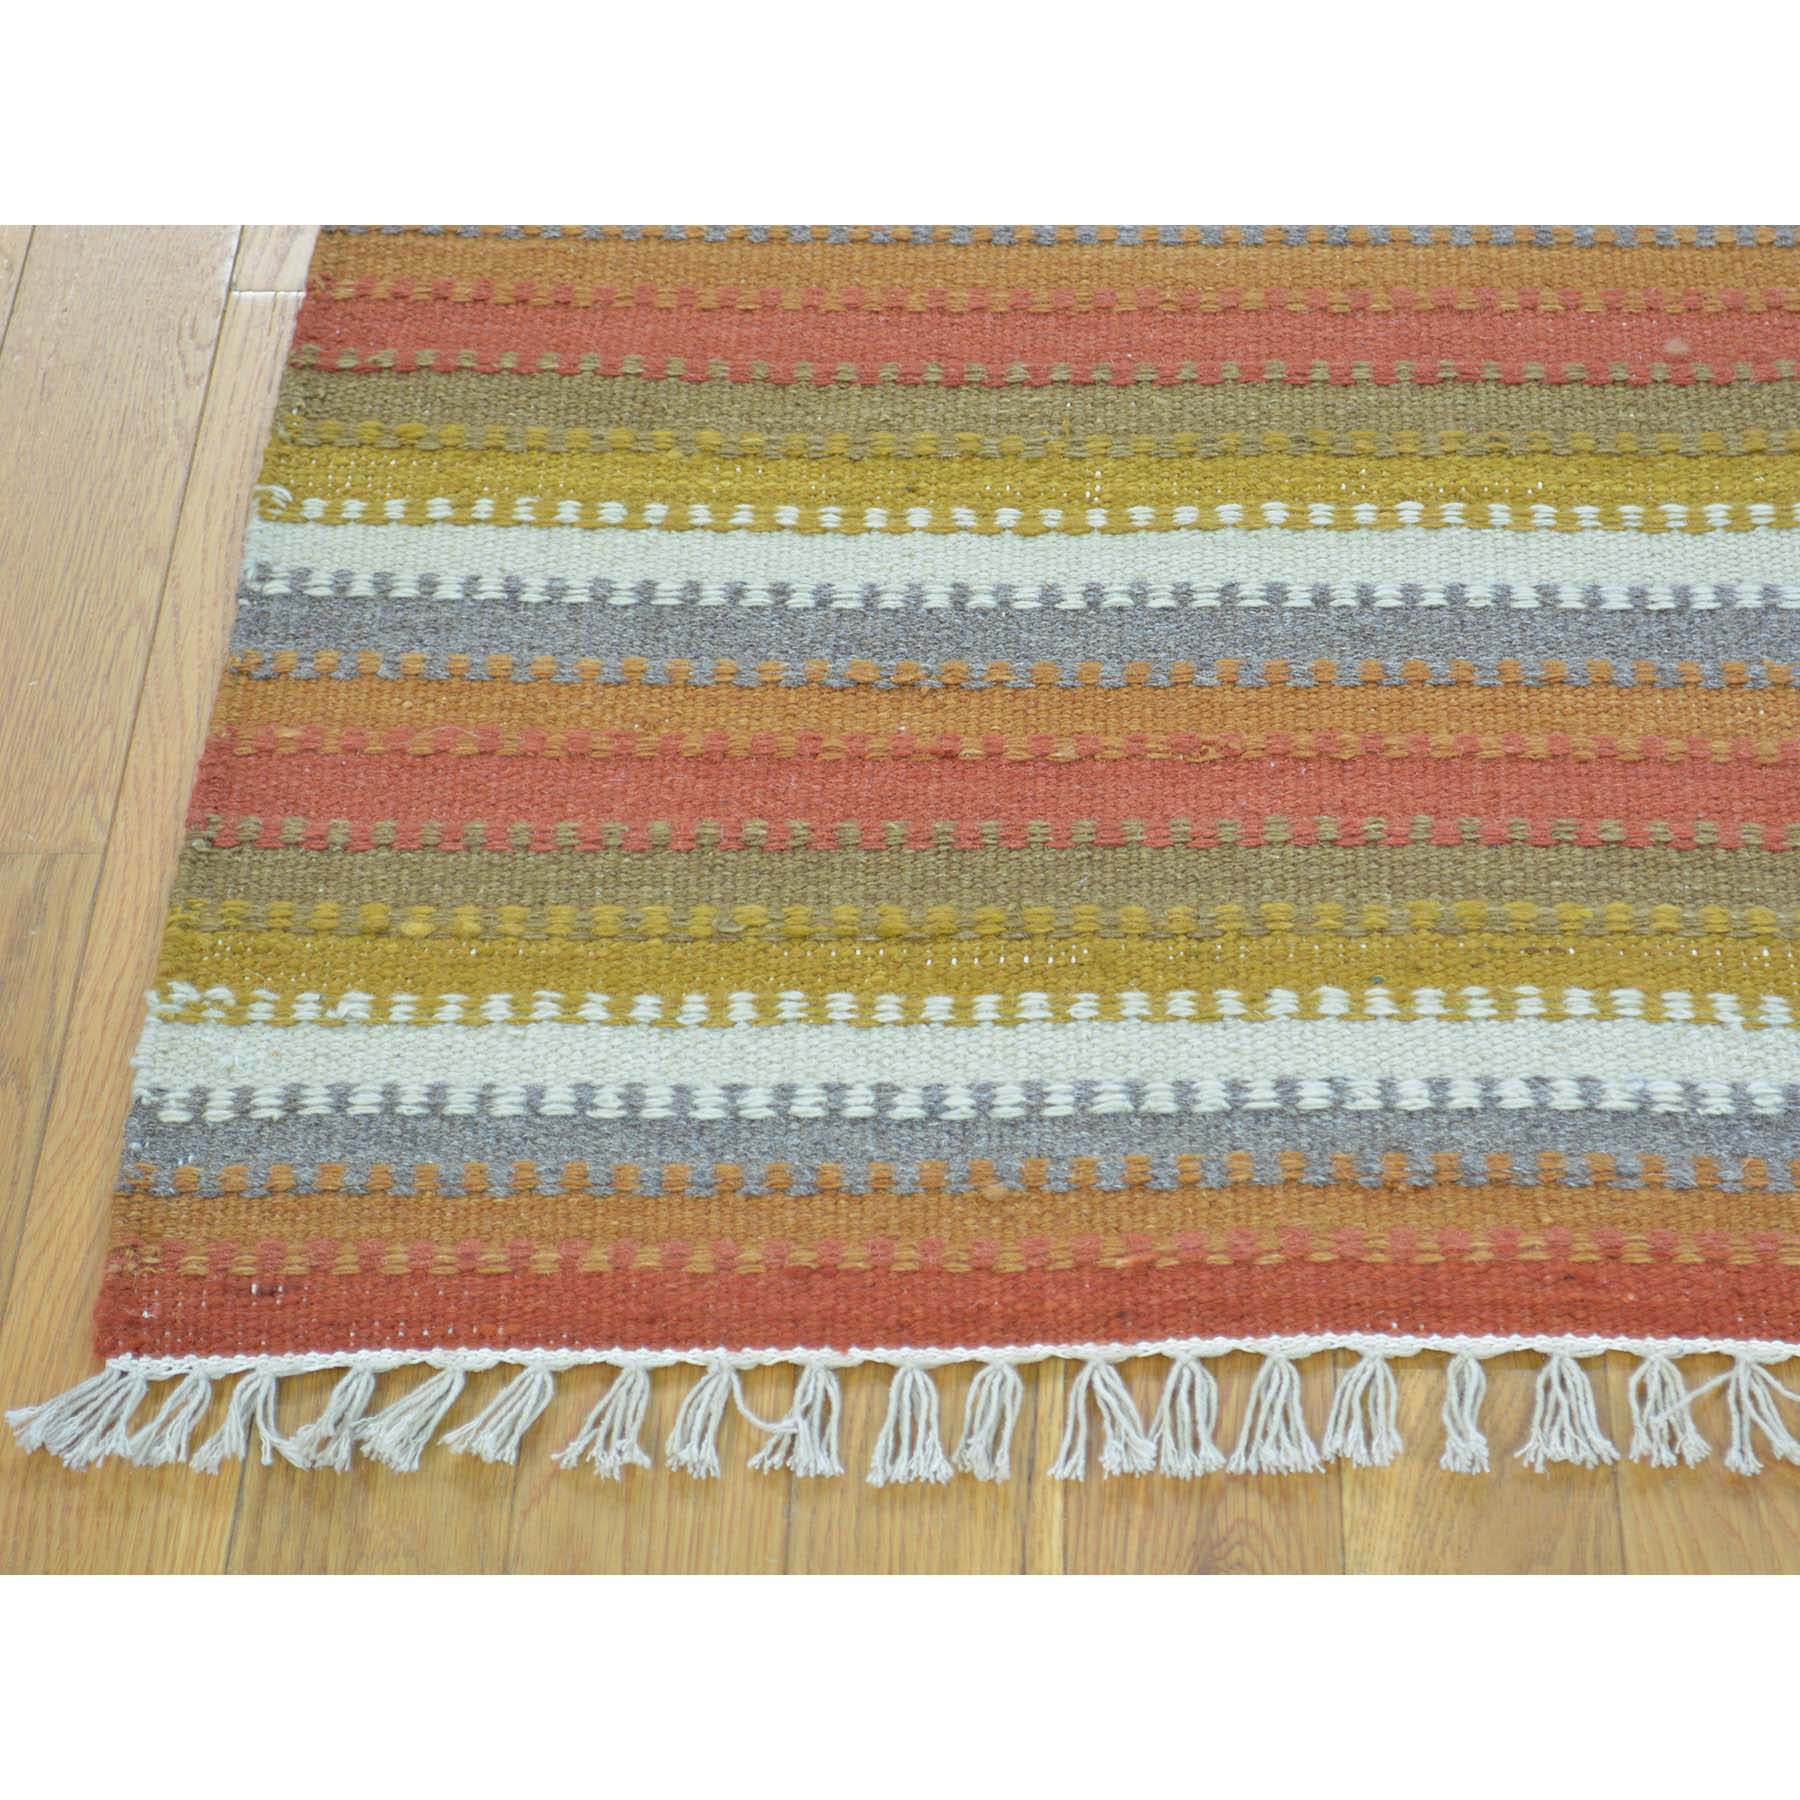 4-x5-10  Colorful Striped Durie Kilim Flat Weave Hand Woven Oriental Rug